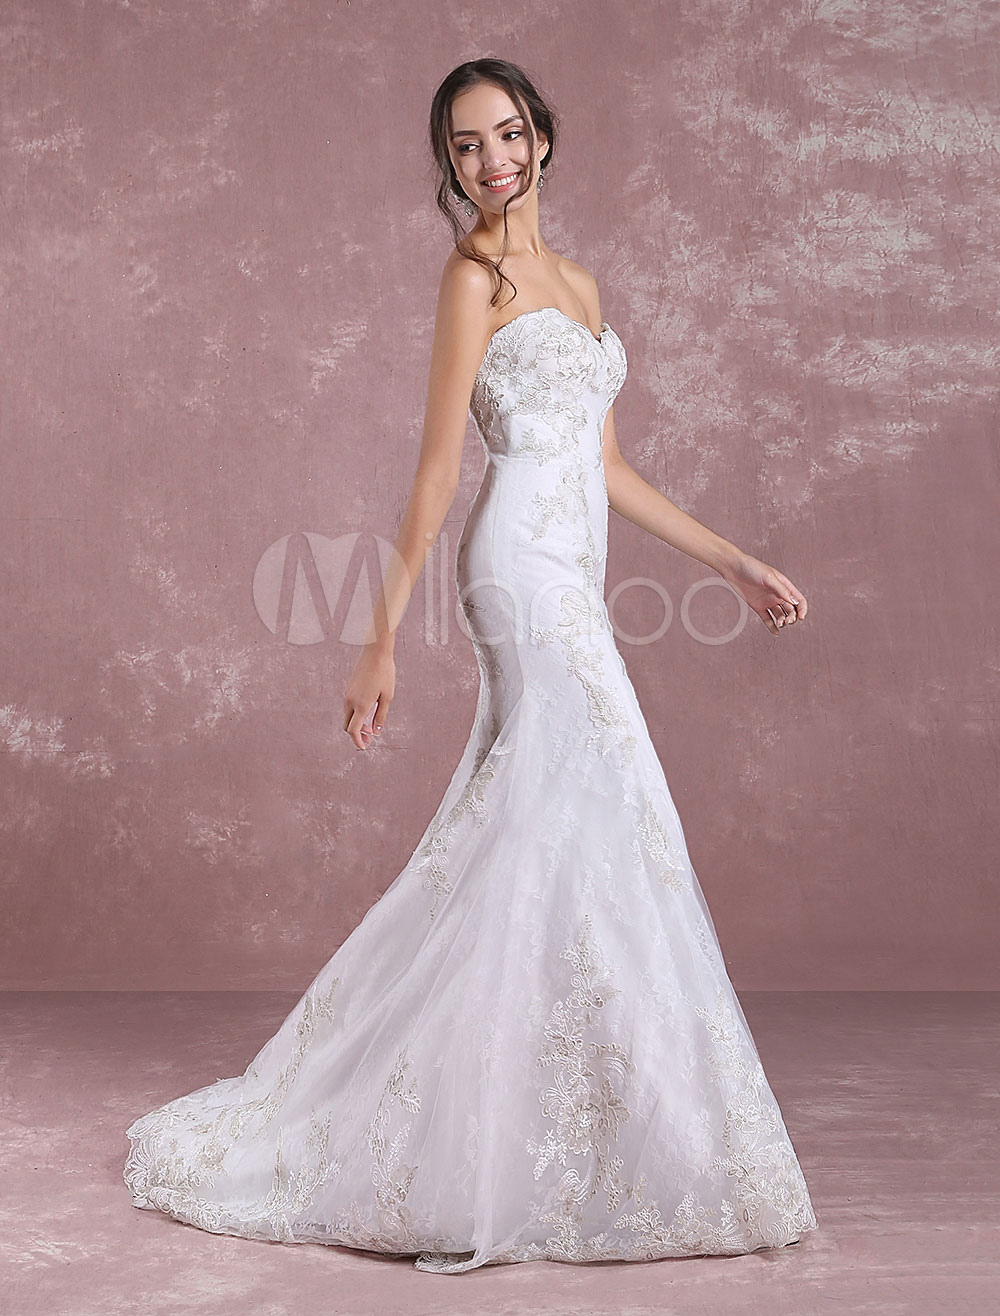 ... Summer Wedding Dresses 2019 Mermaid Lace Bridal Dress Ivory Sweetheart  Strapless Applique Bridal Gown With Train. 12. 45%OFF. Color Ivory 6bbeeb4cde74